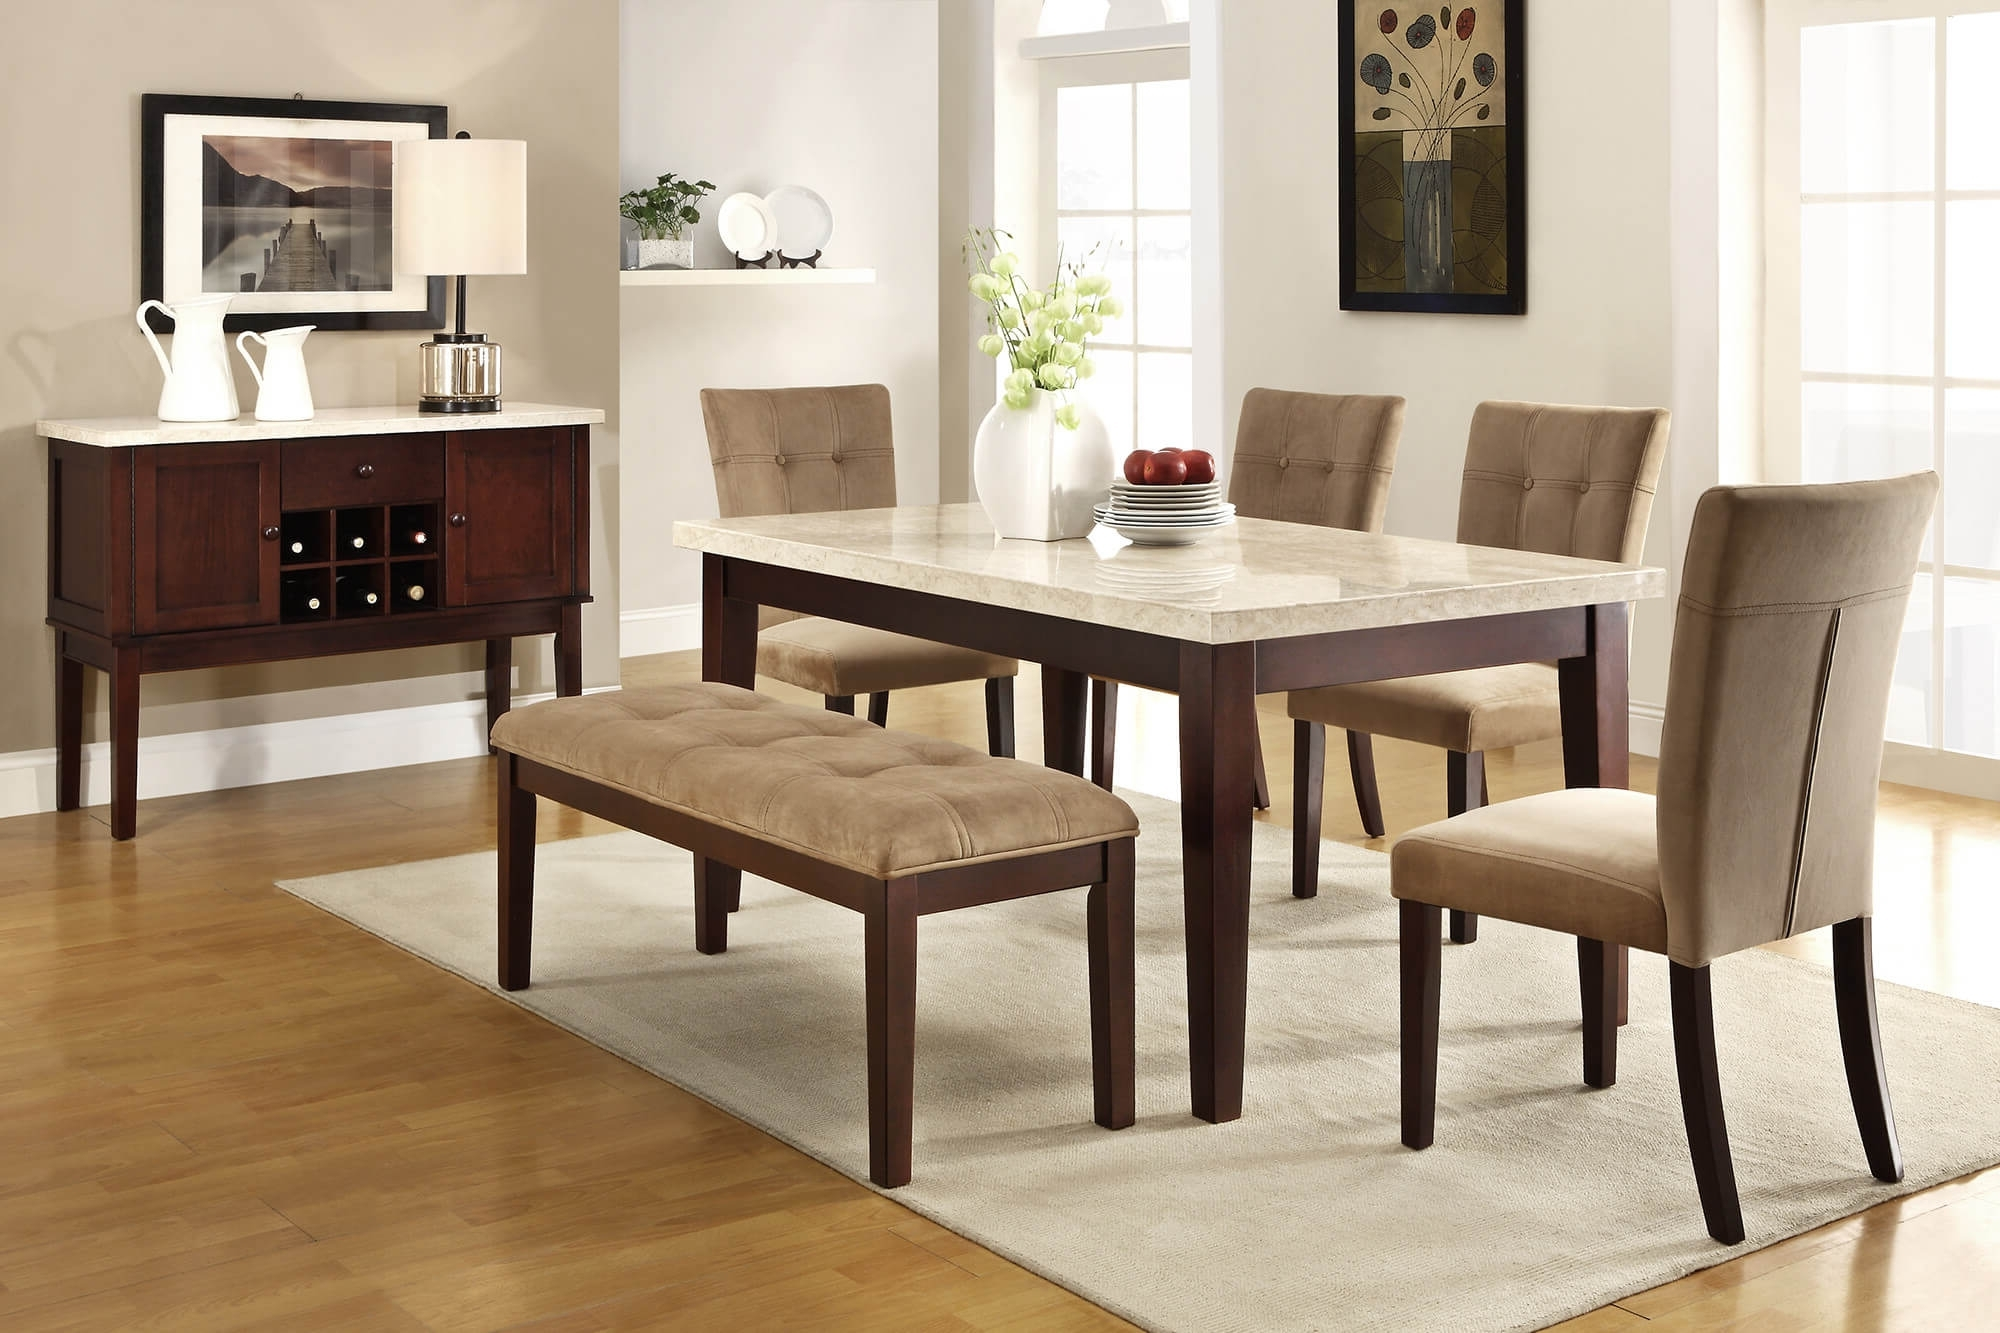 26 Dining Room Sets (Big And Small) With Bench Seating (2018) With Regard To Well Known Cheap Dining Room Chairs (Gallery 13 of 25)